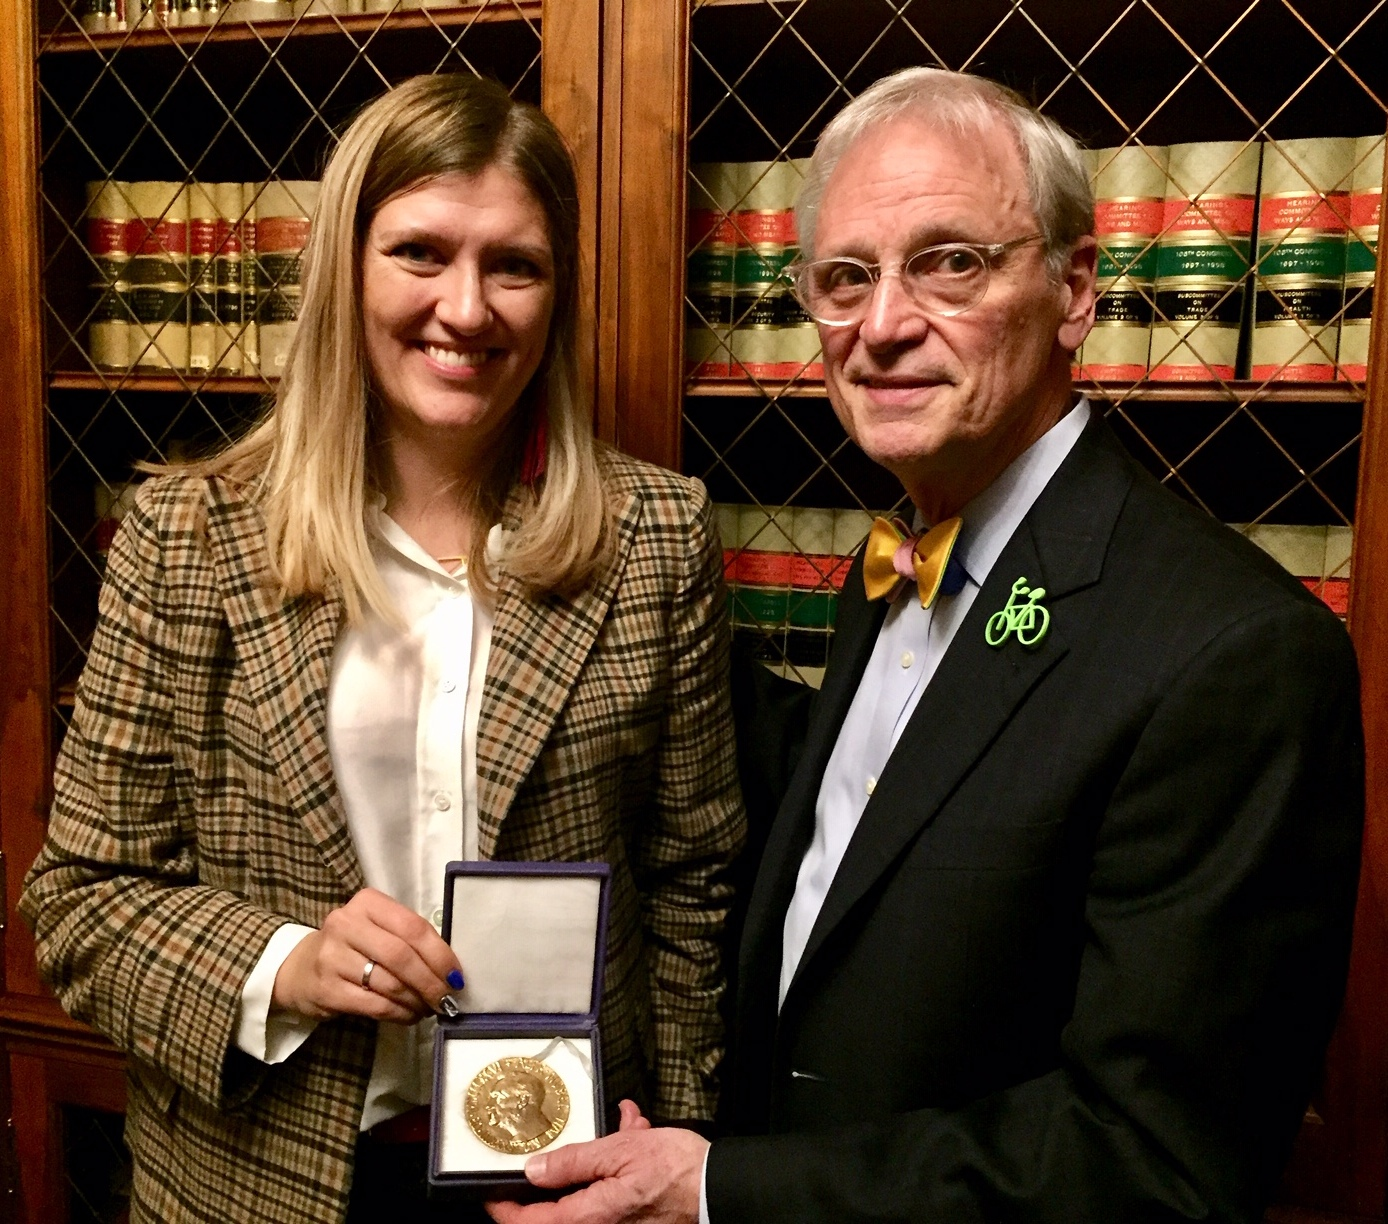 Earl_Blumenauer_and_Beatrice_Finn_with_Nobel_Peace_Prize.jpg